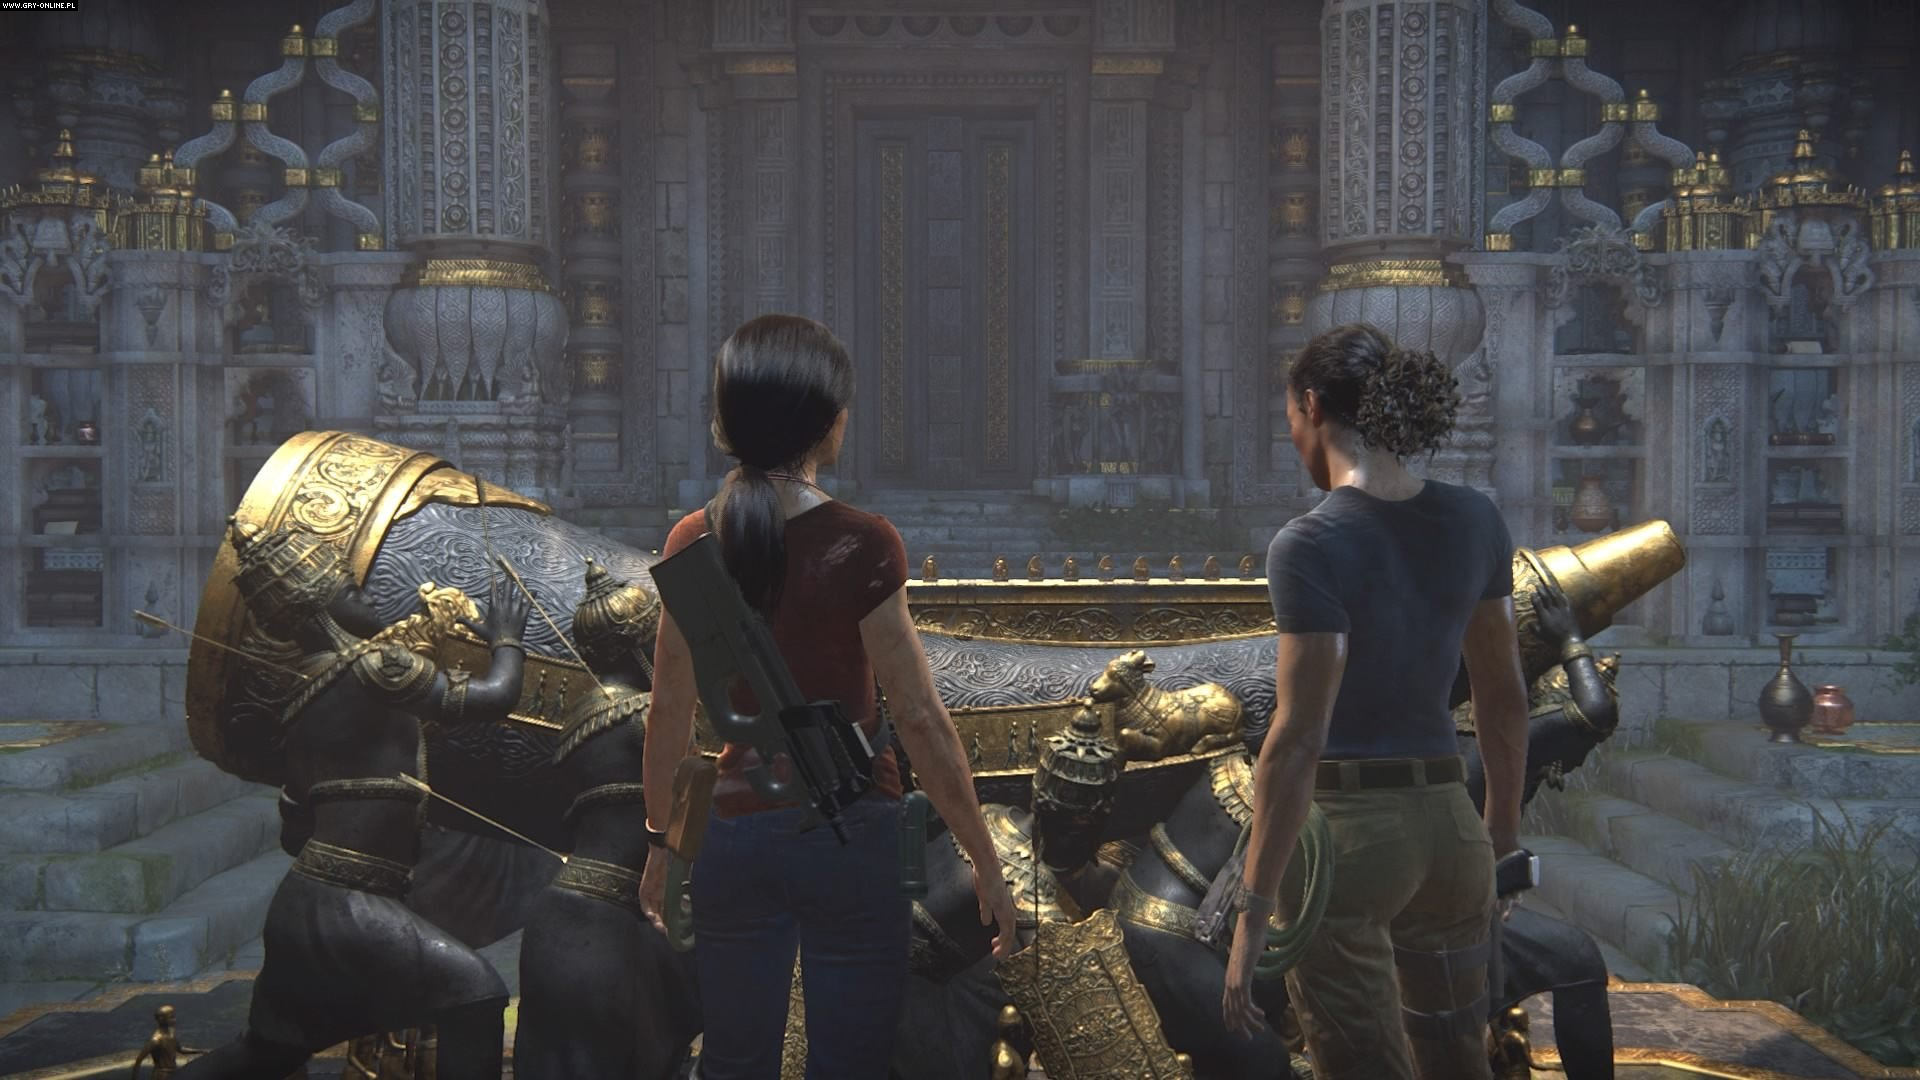 Uncharted: The Lost Legacy PS4 Games Image 9/141, Naughty Dog, Sony Interactive Entertainment